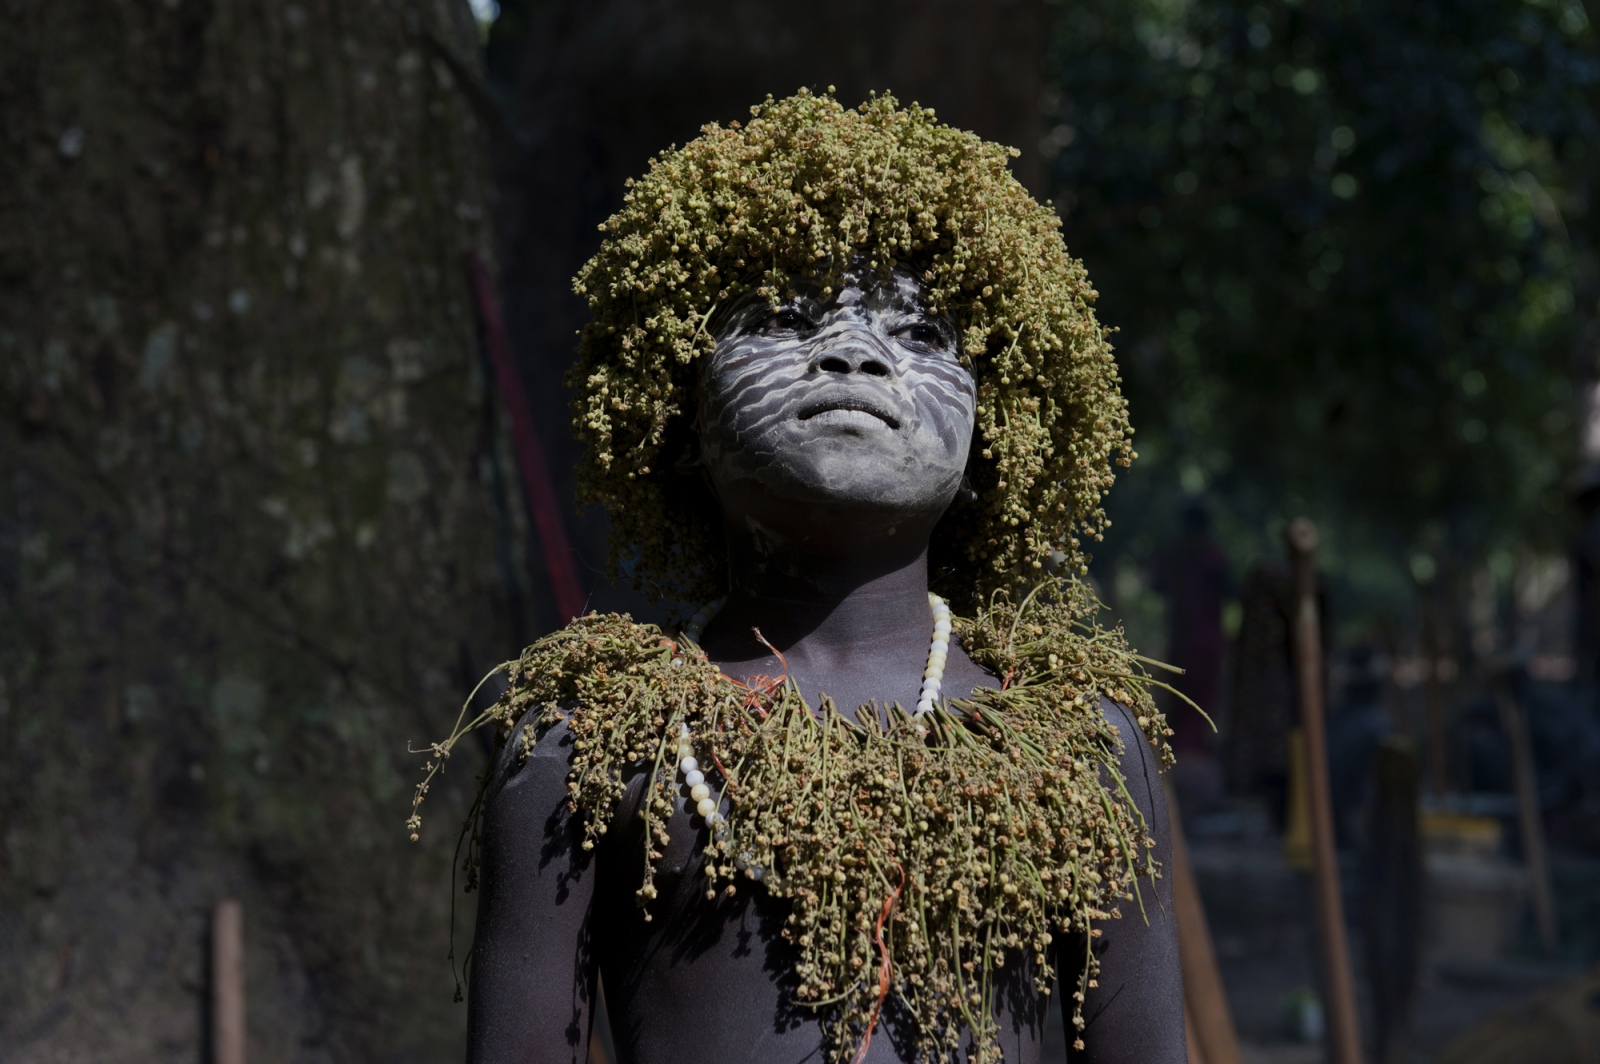 Art and Documentary Photography - Loading jarawa_beilvert_flower_necklace_boy.jpg